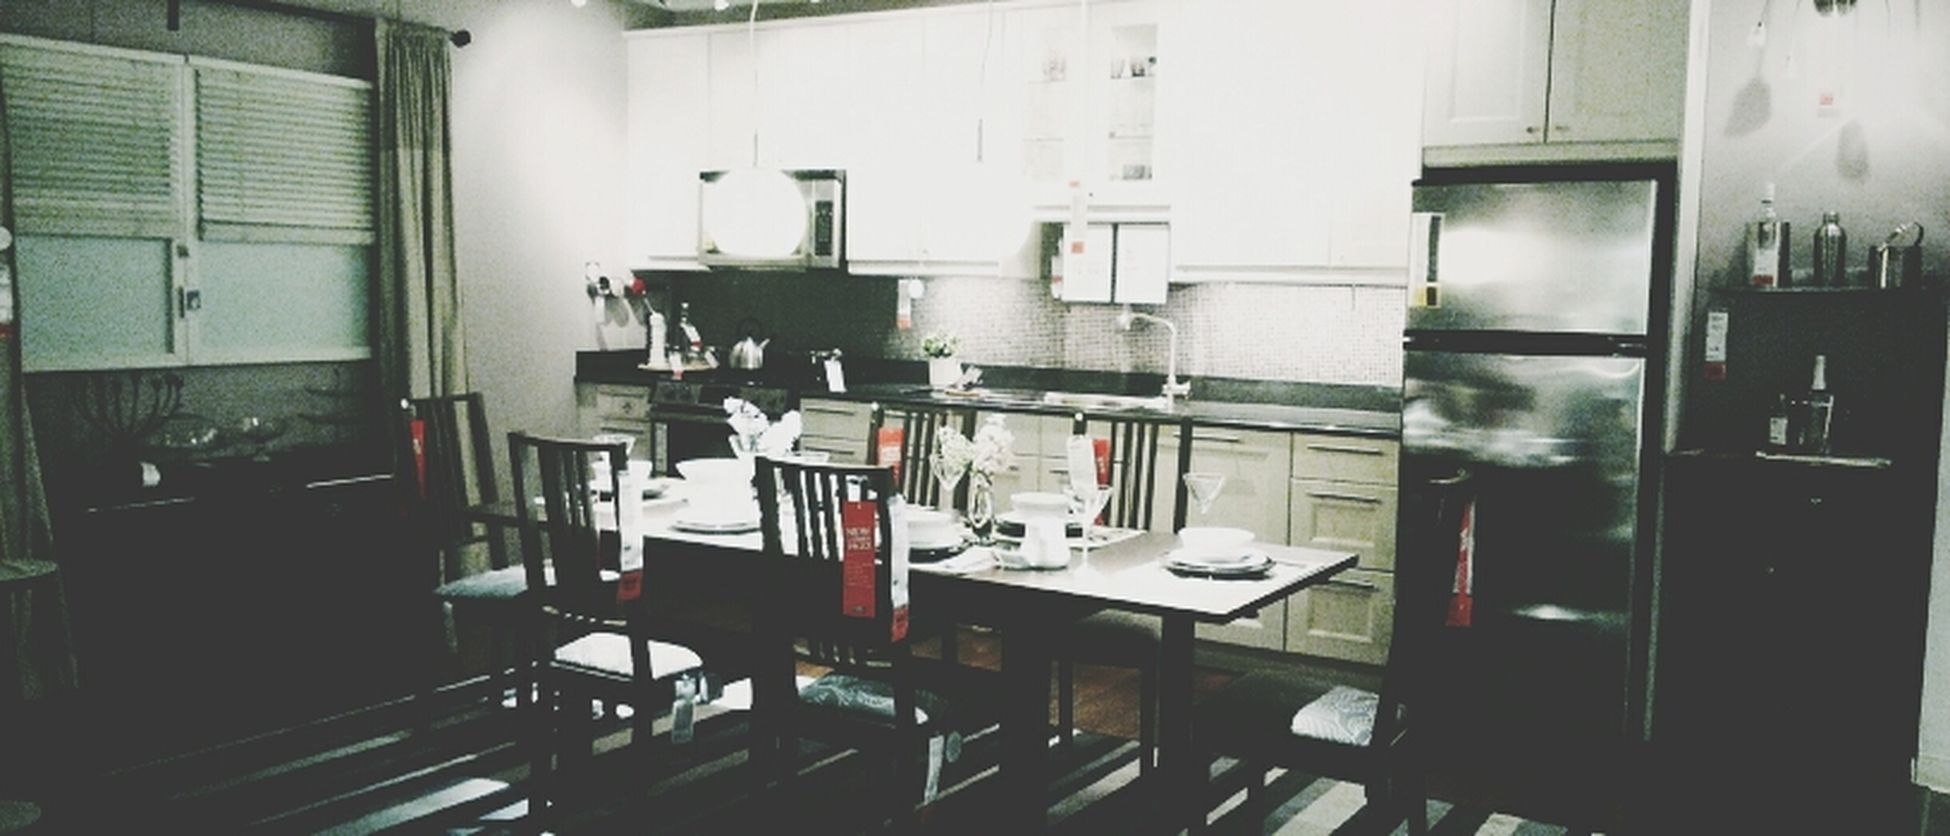 In a perfect world. A kitchen I could love. Taking Photos Droidography Lifeography